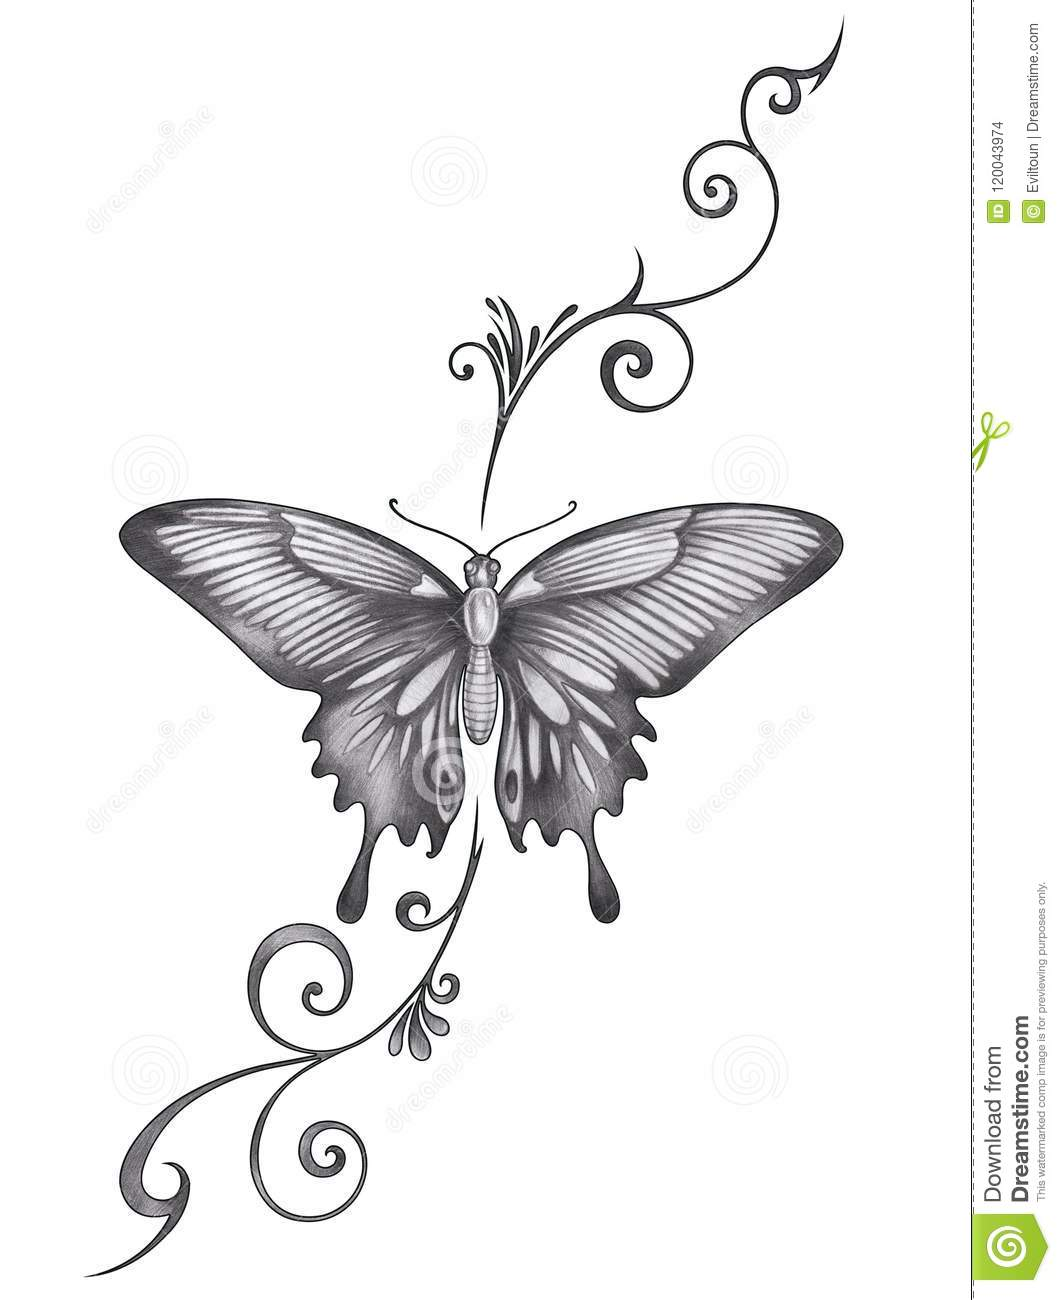 Butterfly Art Design Images